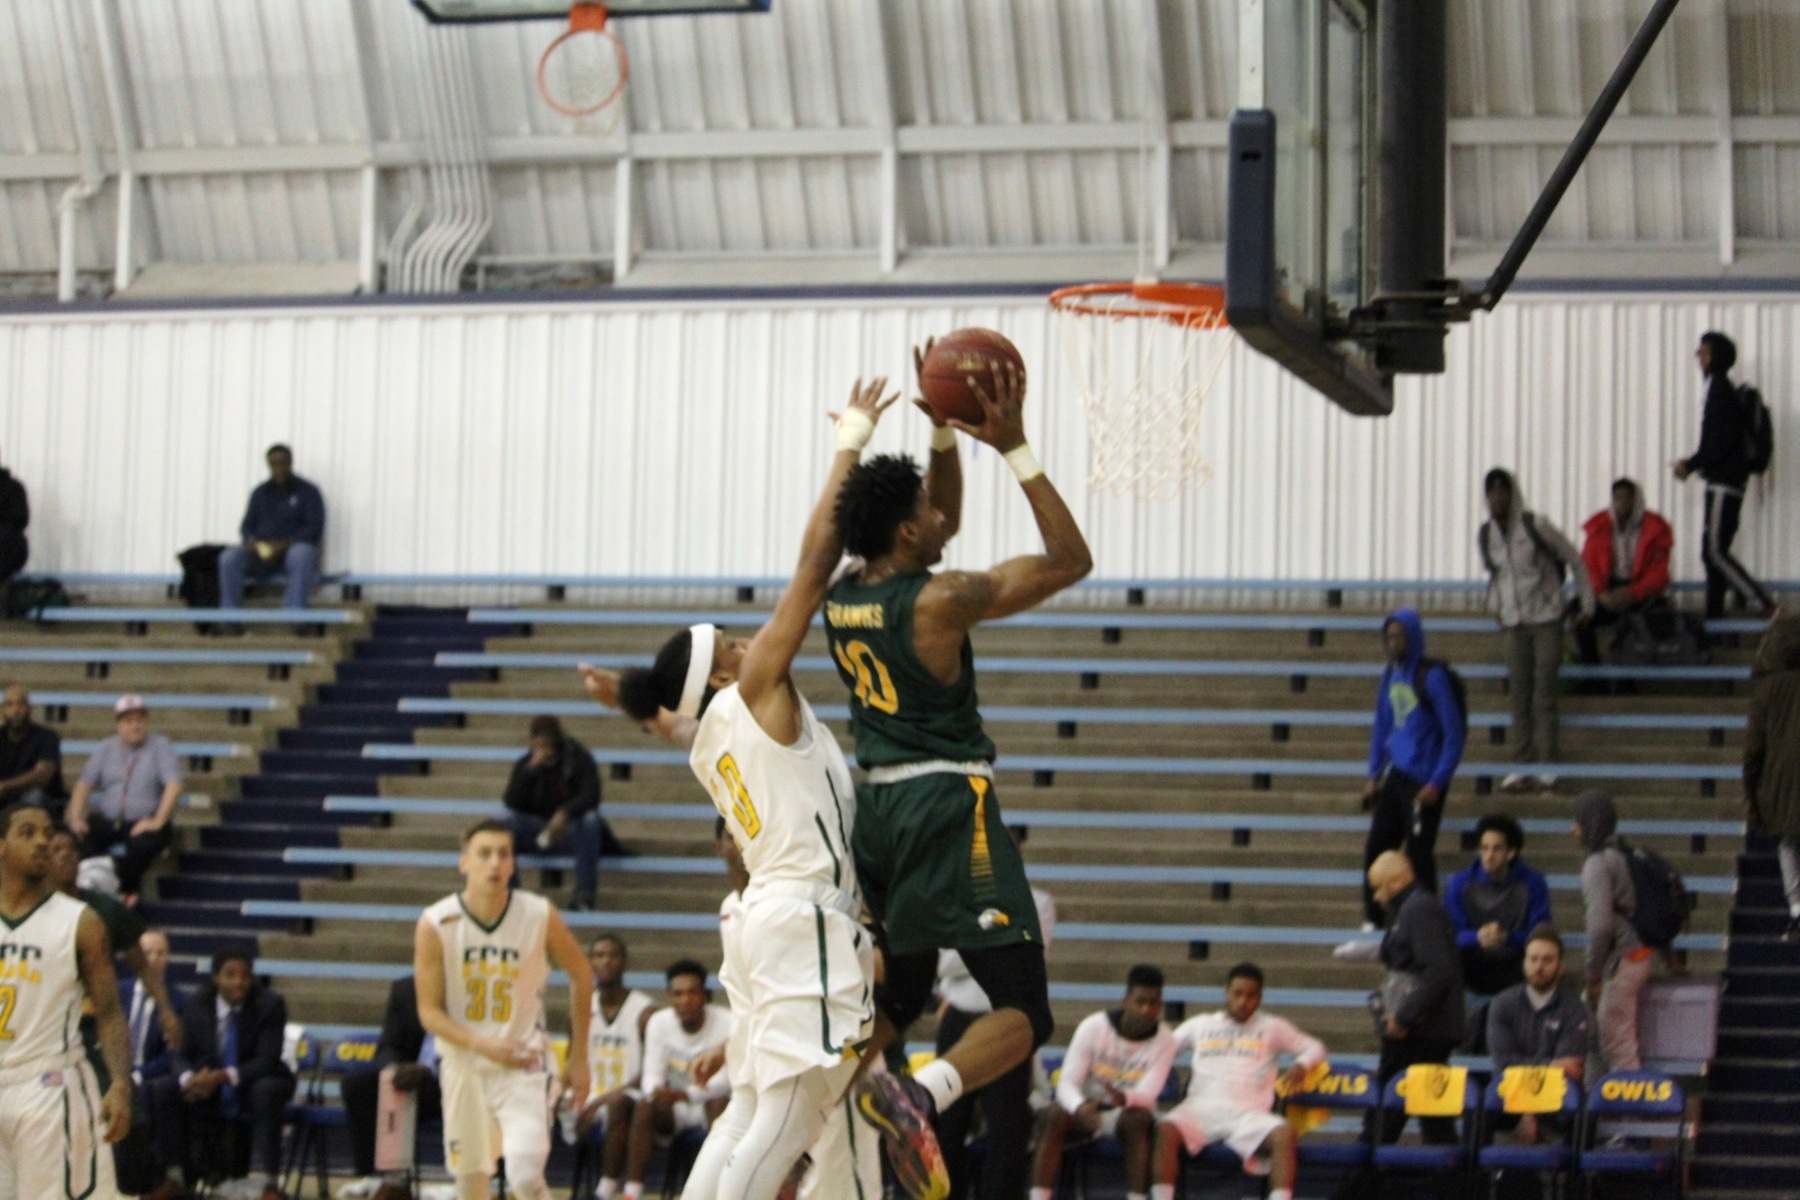 Men's Basketball: No. 6 Seahawks Fly Past No. 3 Cougars in 2OT Thriller